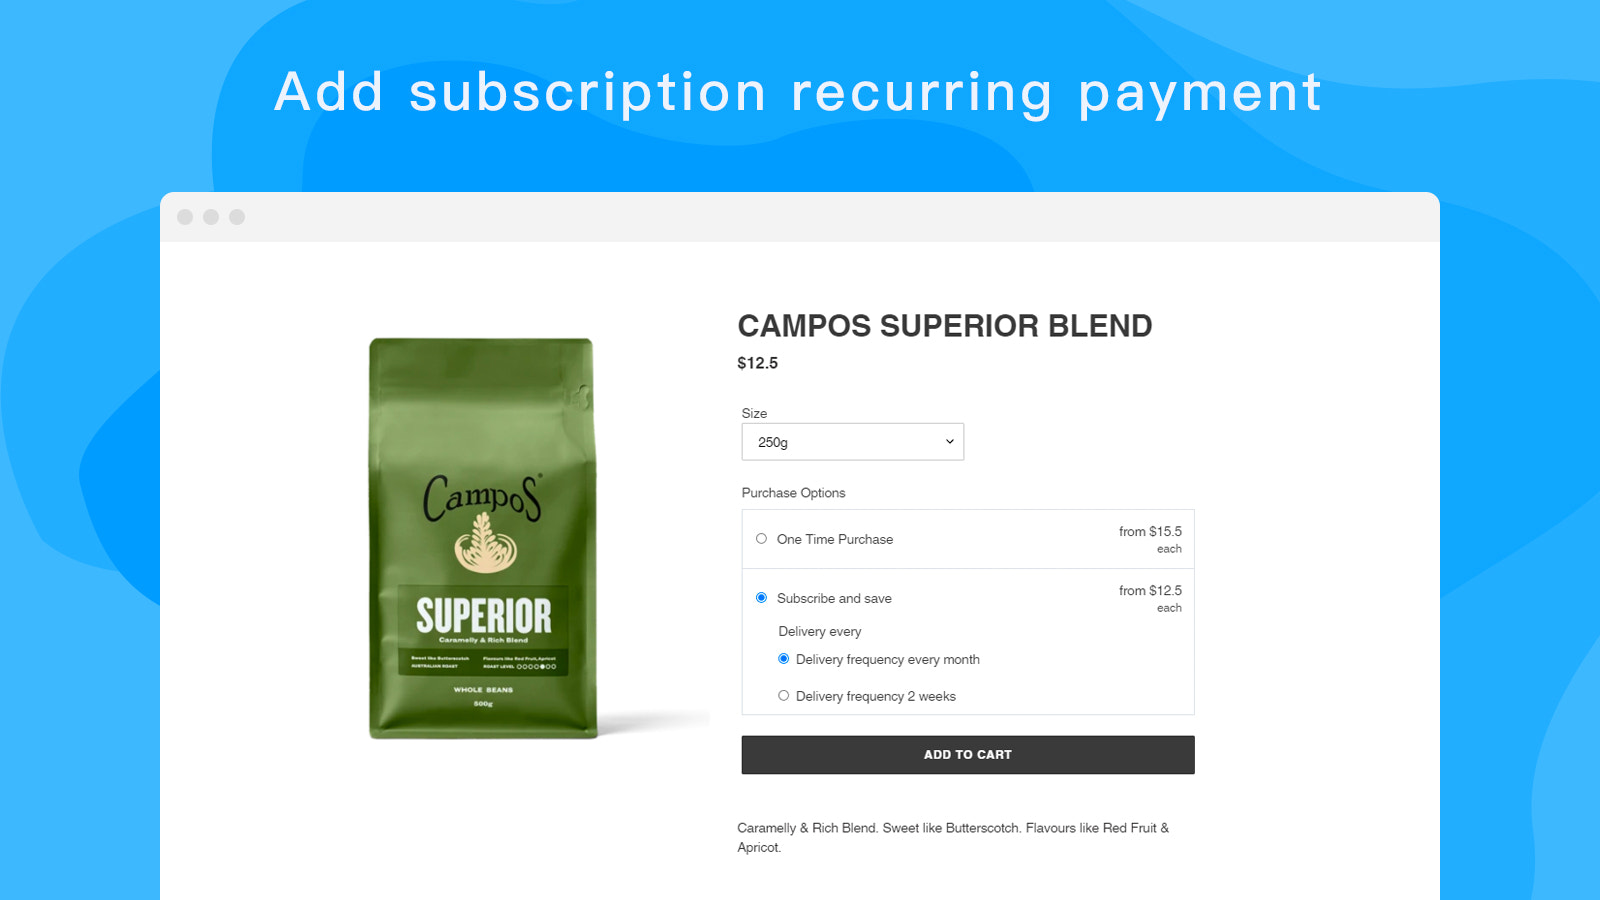 Add subscription recurring payment